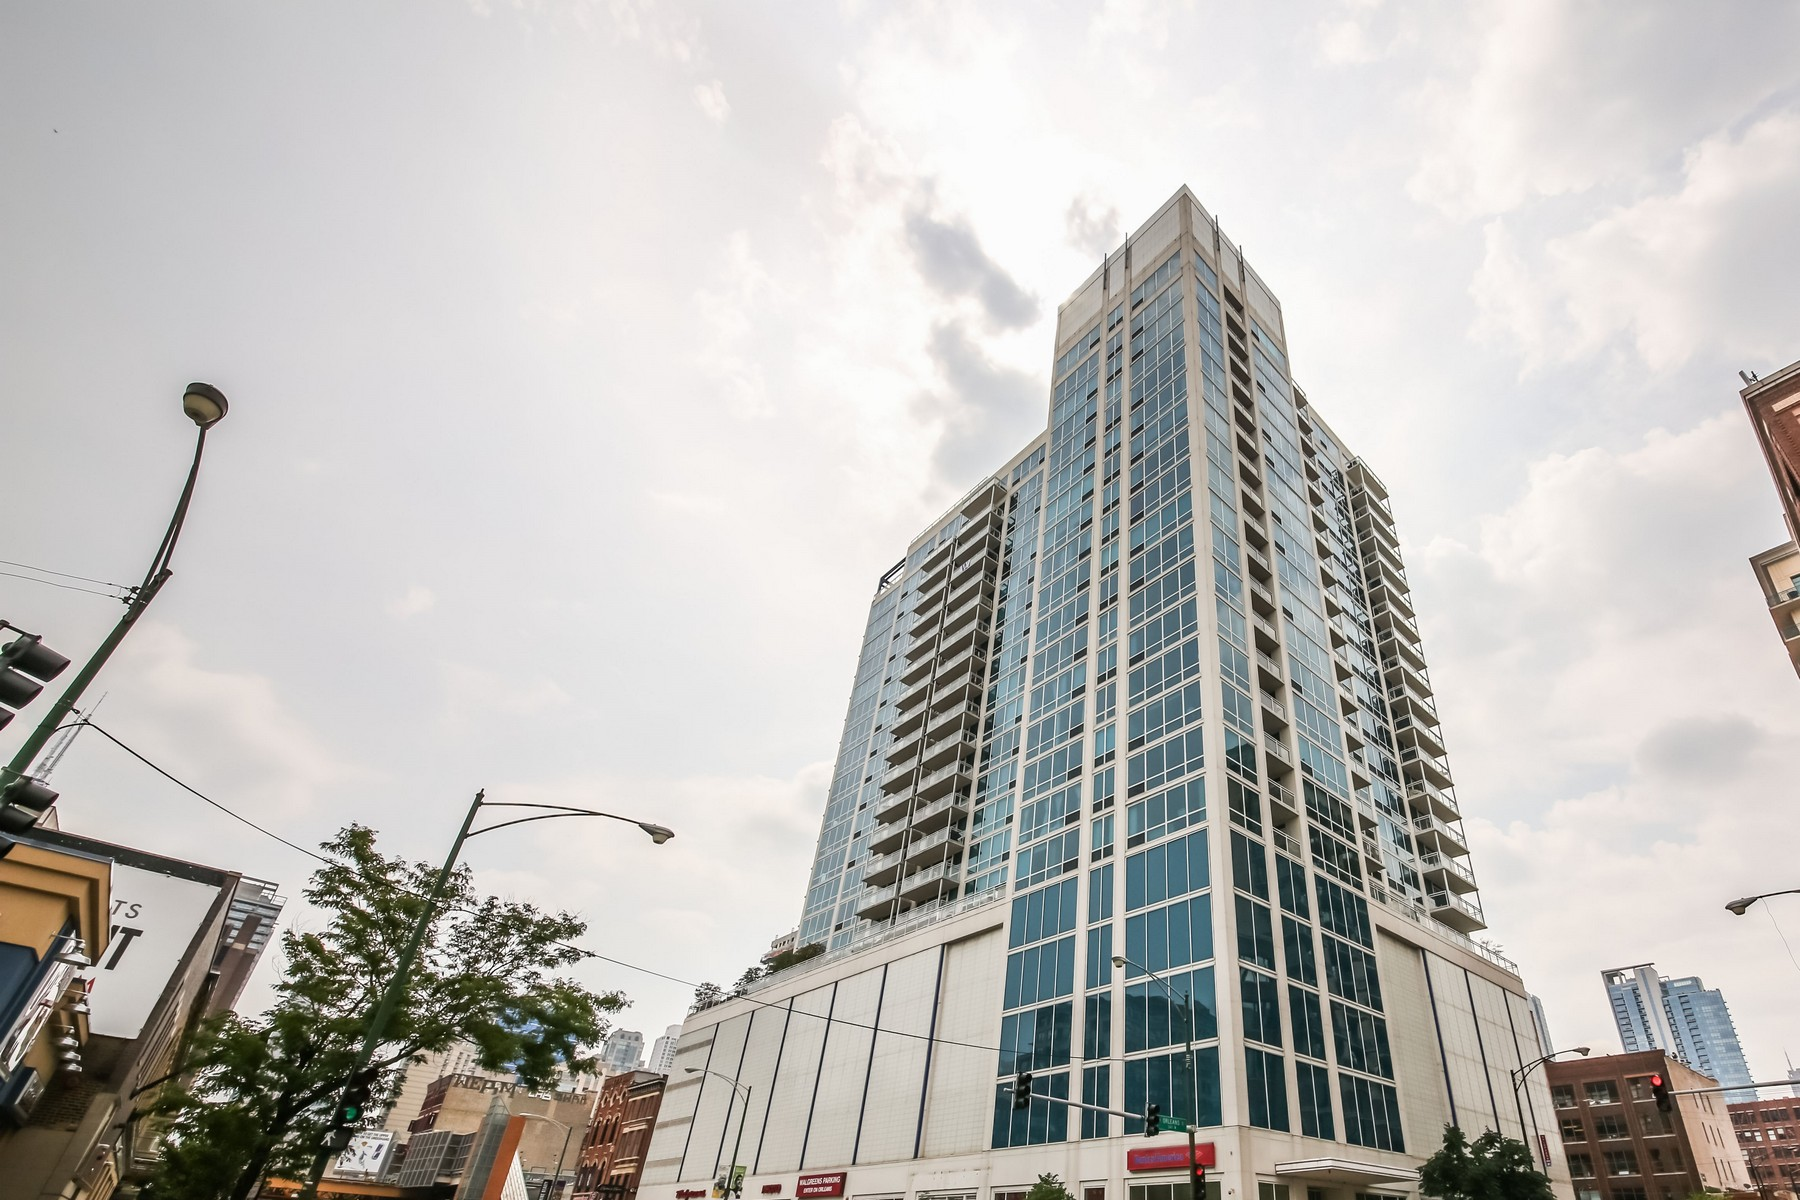 شقة بعمارة للـ Sale في Stunning One Bedroom Condo 757 N Orleans Street Unit 2003, Near North Side, Chicago, Illinois, 60654 United States